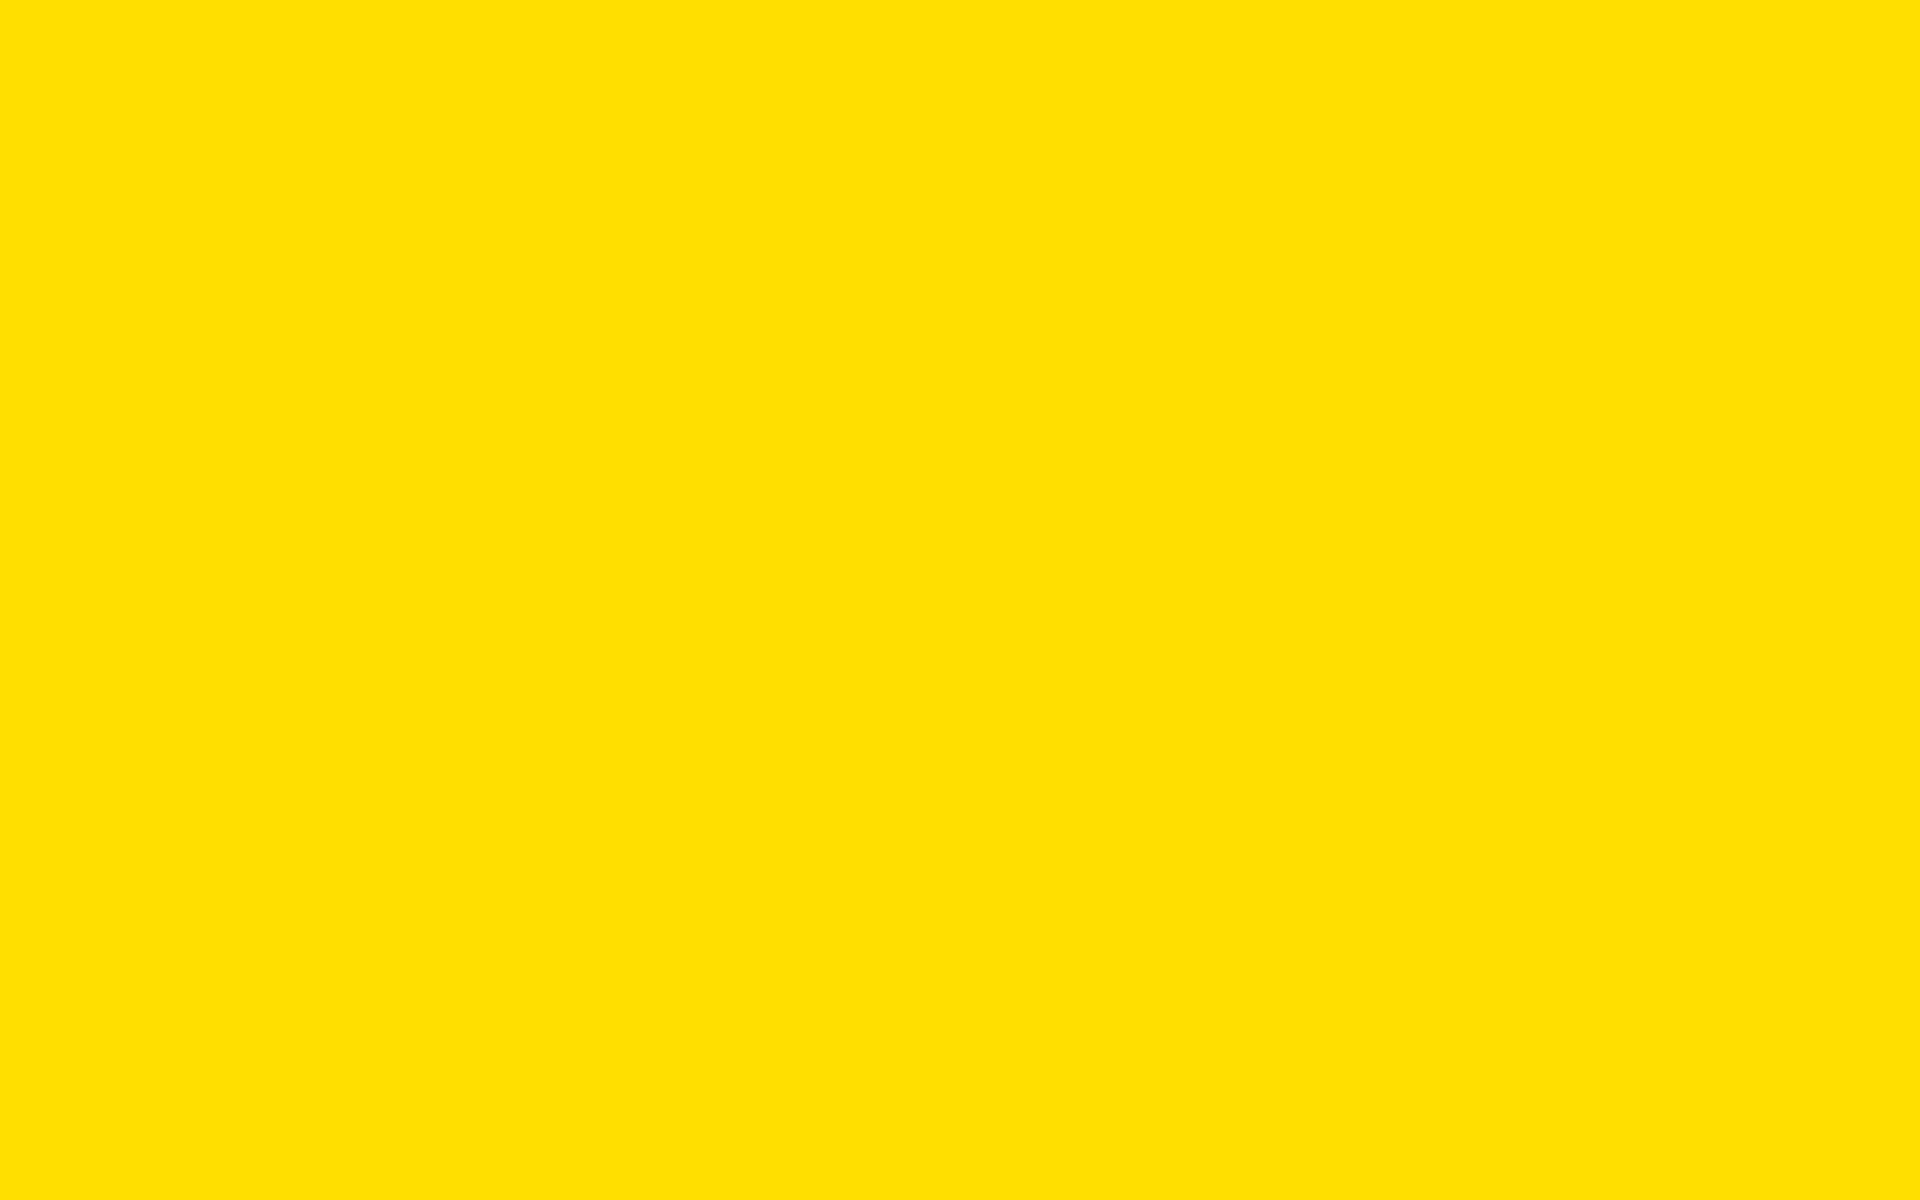 1920x1200 Golden Yellow Solid Color Background